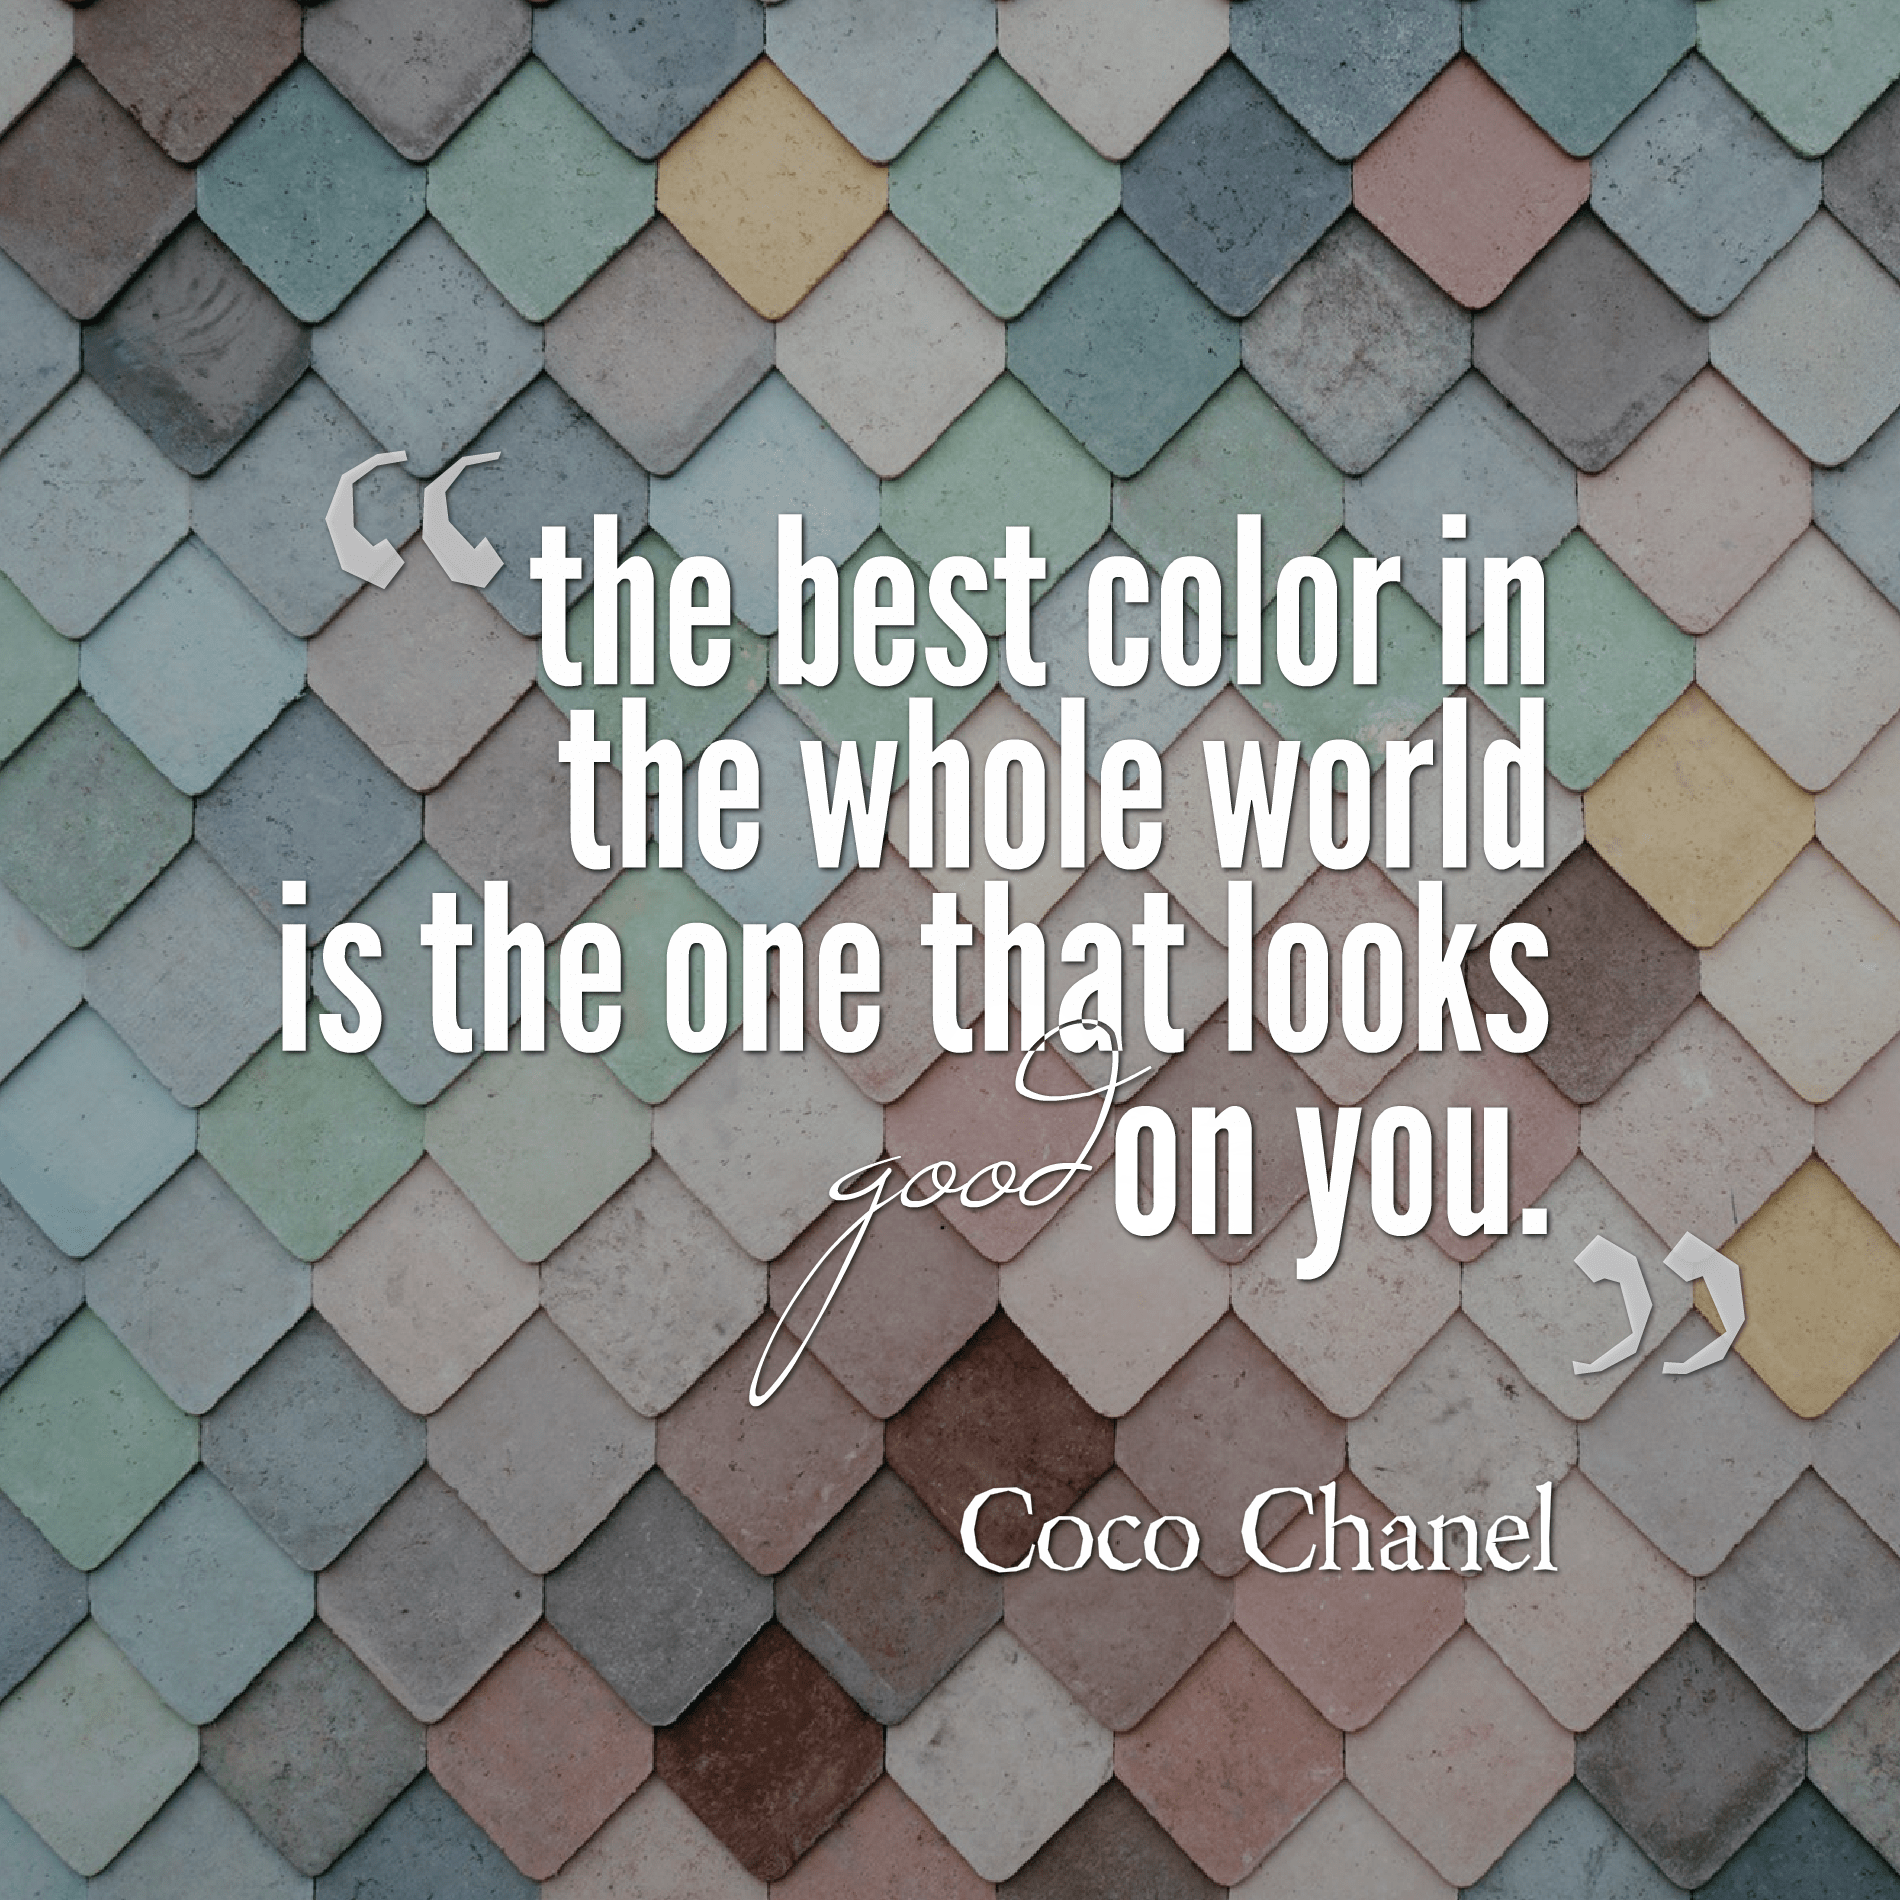 Quotes image of the best color in the whole world is the one that looks good on you.